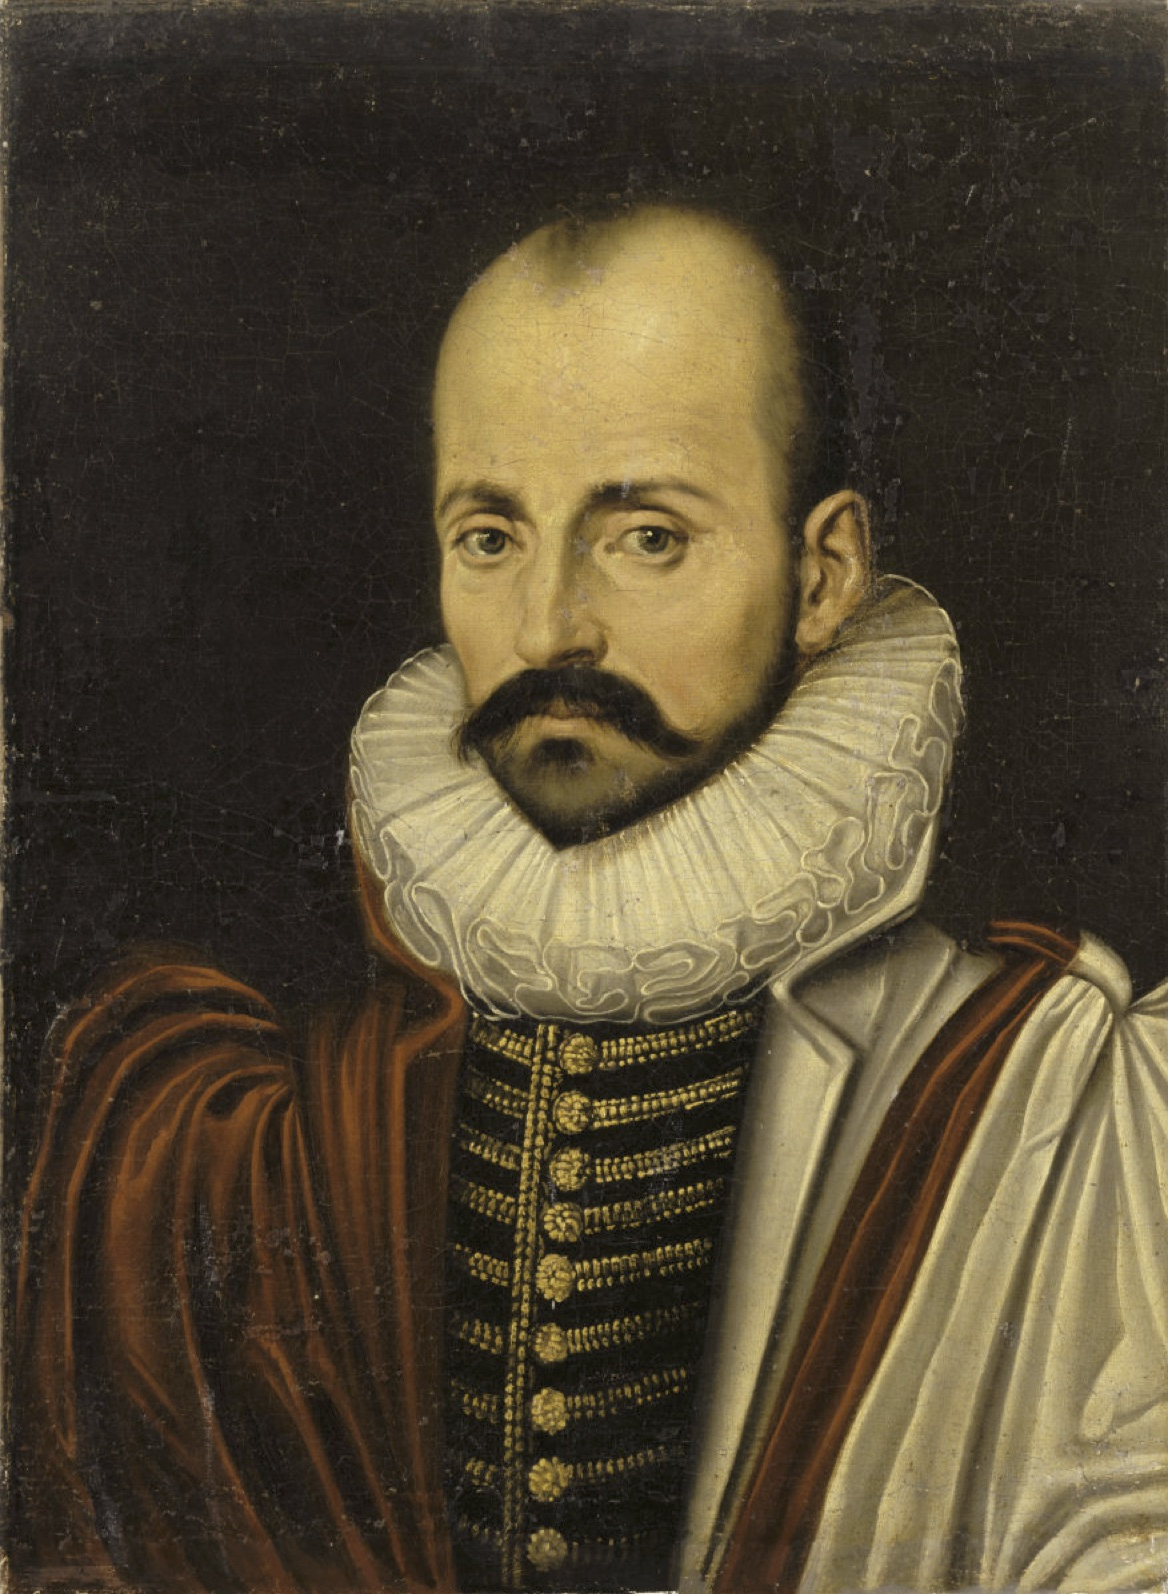 Portrait Of A Pretty 15 Year Old Girl With Her Arms Raised: Michel De Montaigne